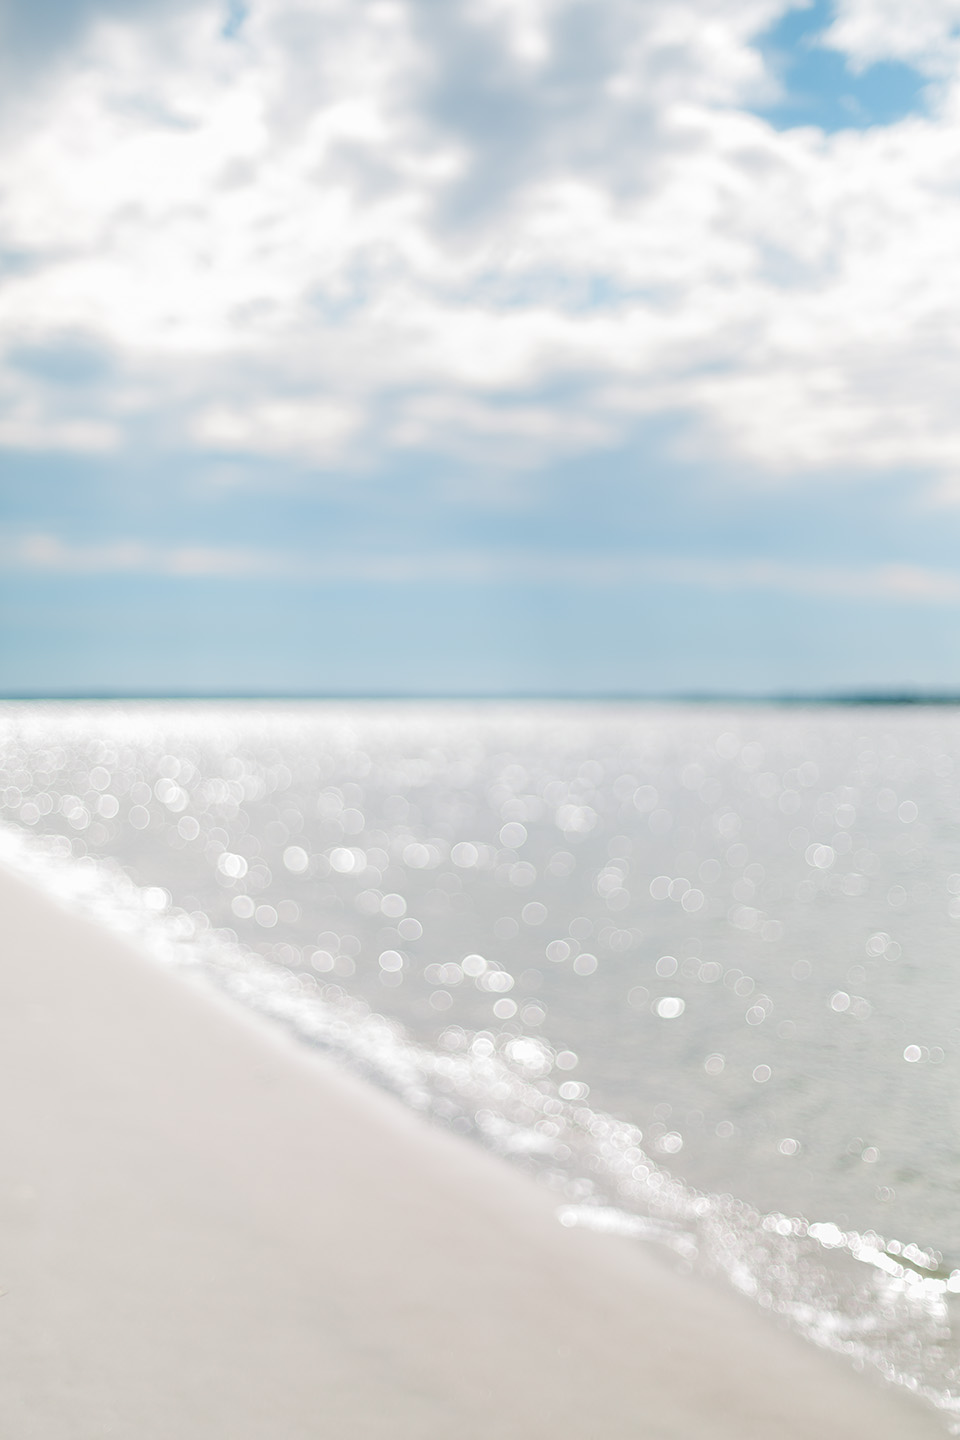 Image of water sparkling in the sunlight on the ocean waters of the Atlantic on Amelia Island.